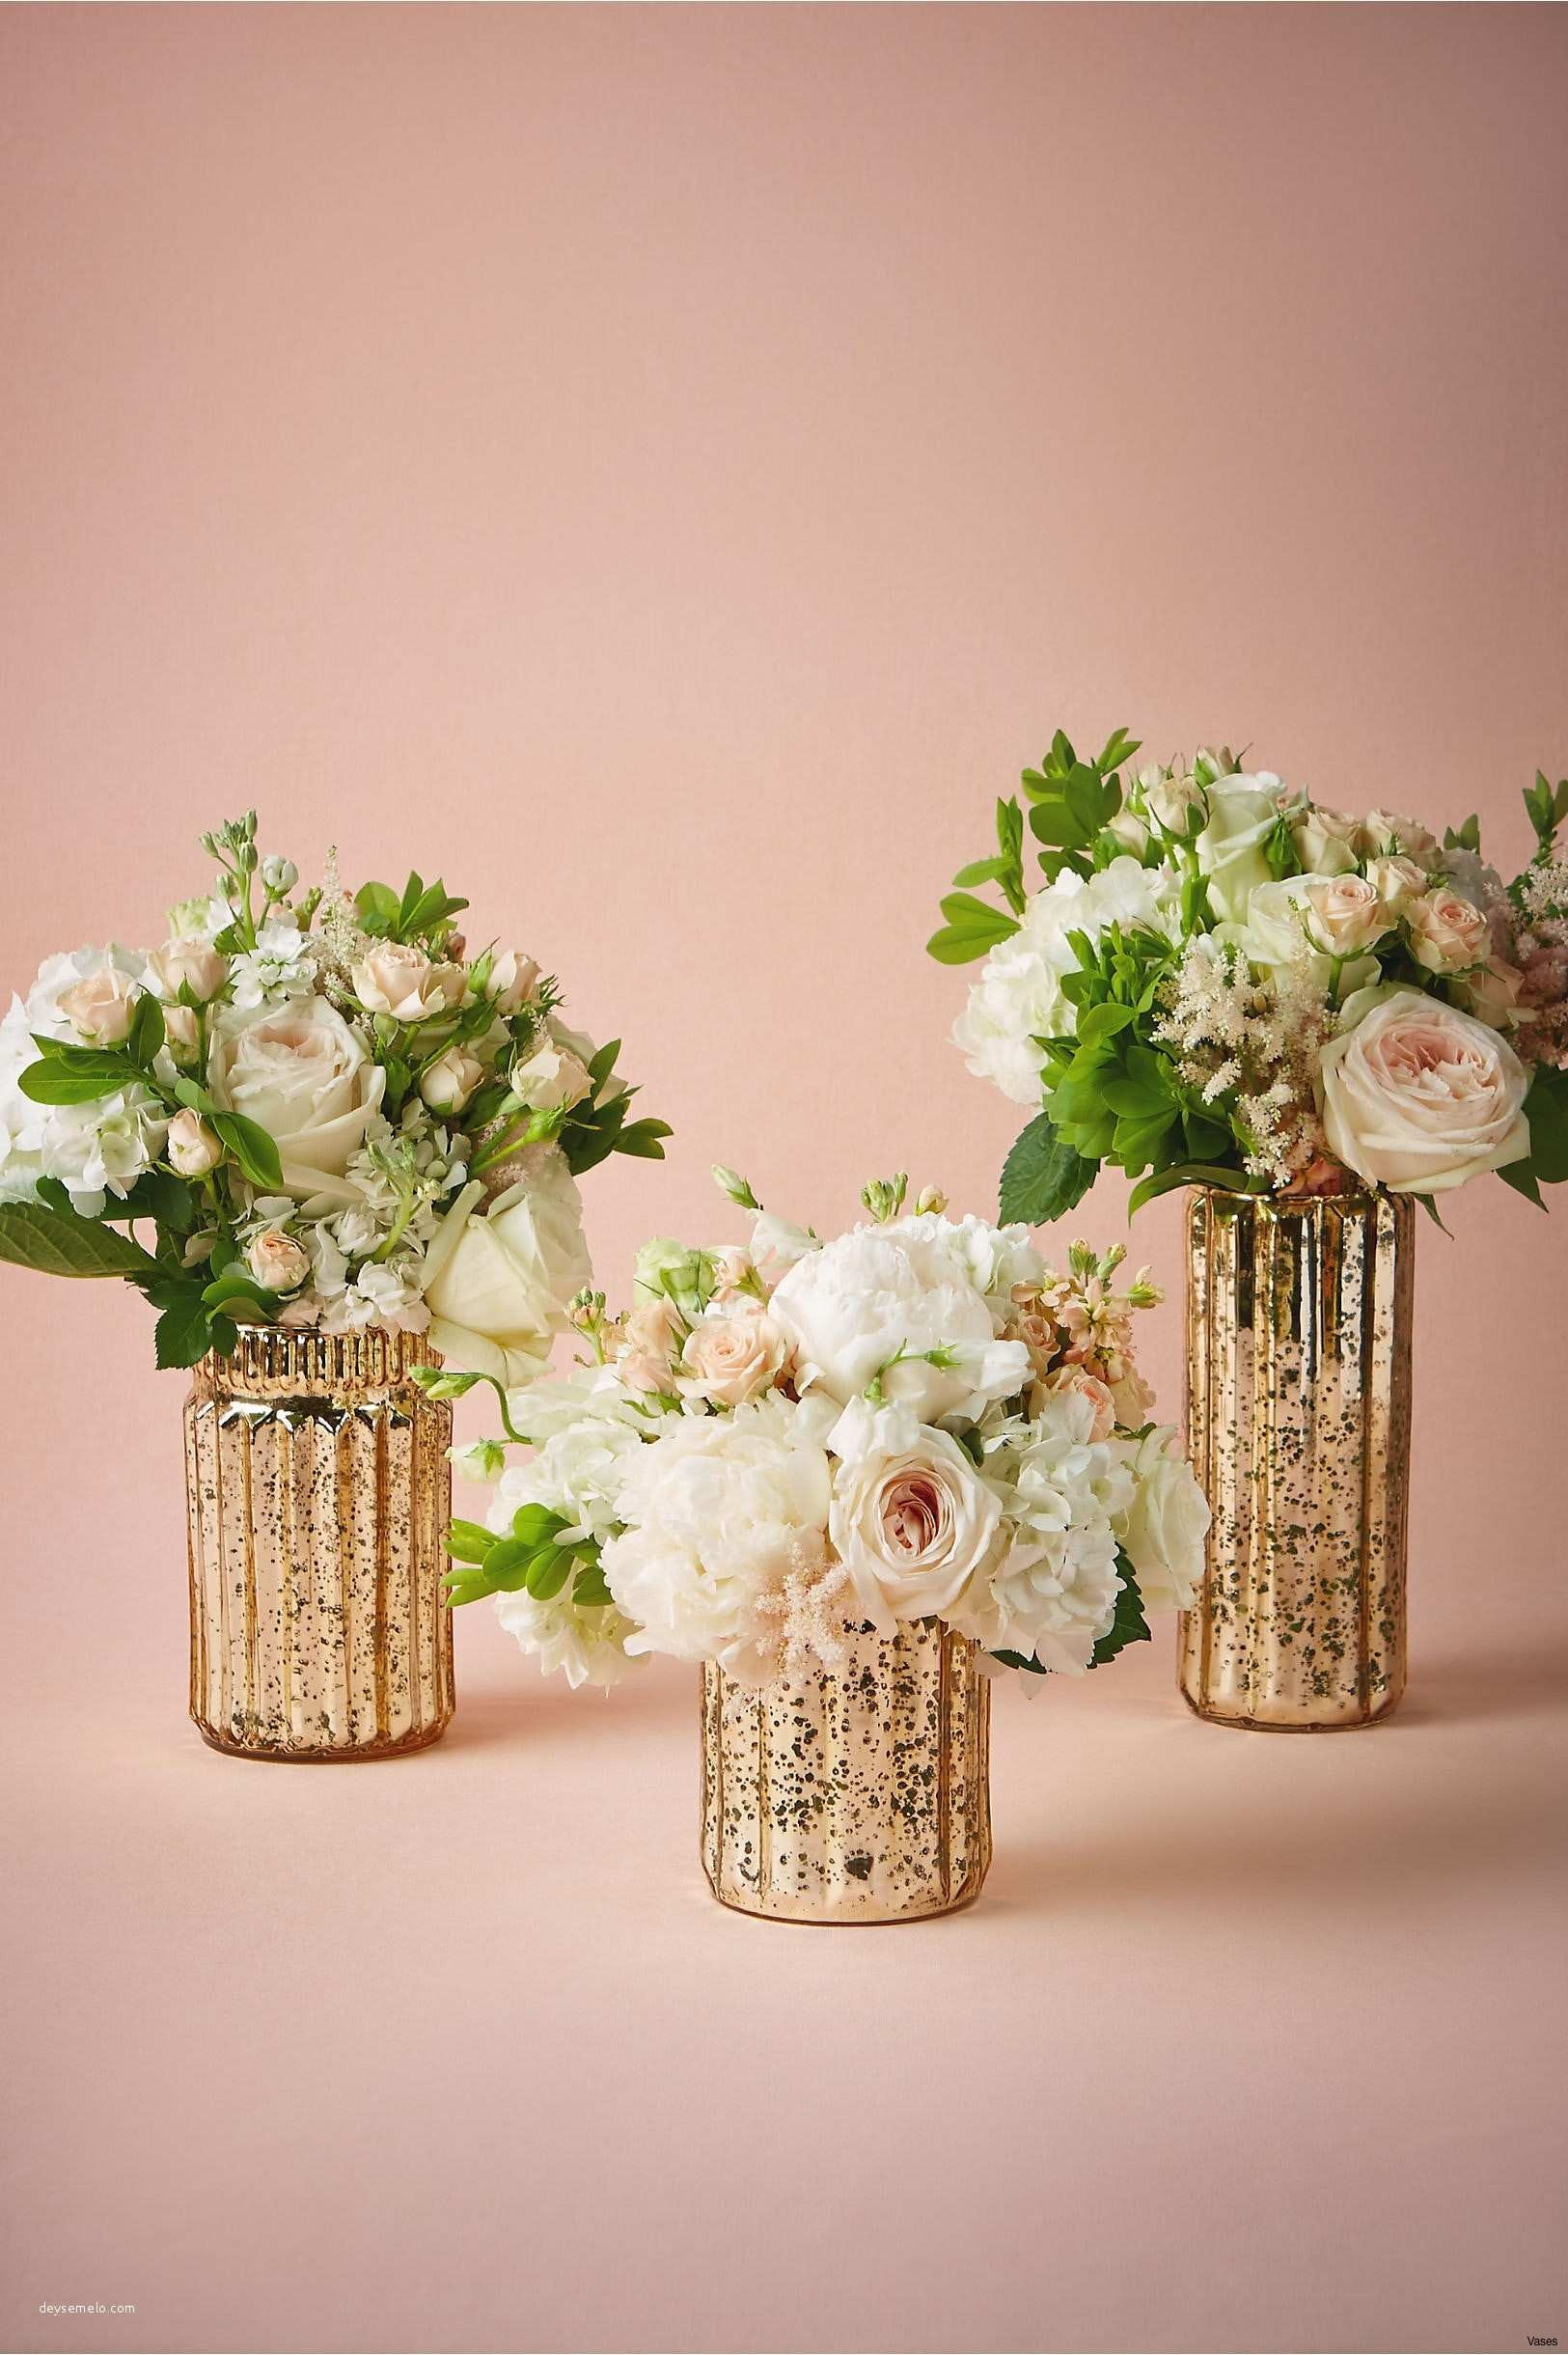 dollar store bud vases of wedding glass decoration new decoration 1 an beau dollar tree throughout wedding glass decoration elegant elegant mercury glass decor 6625 1h vases mercury glass cylinder of wedding